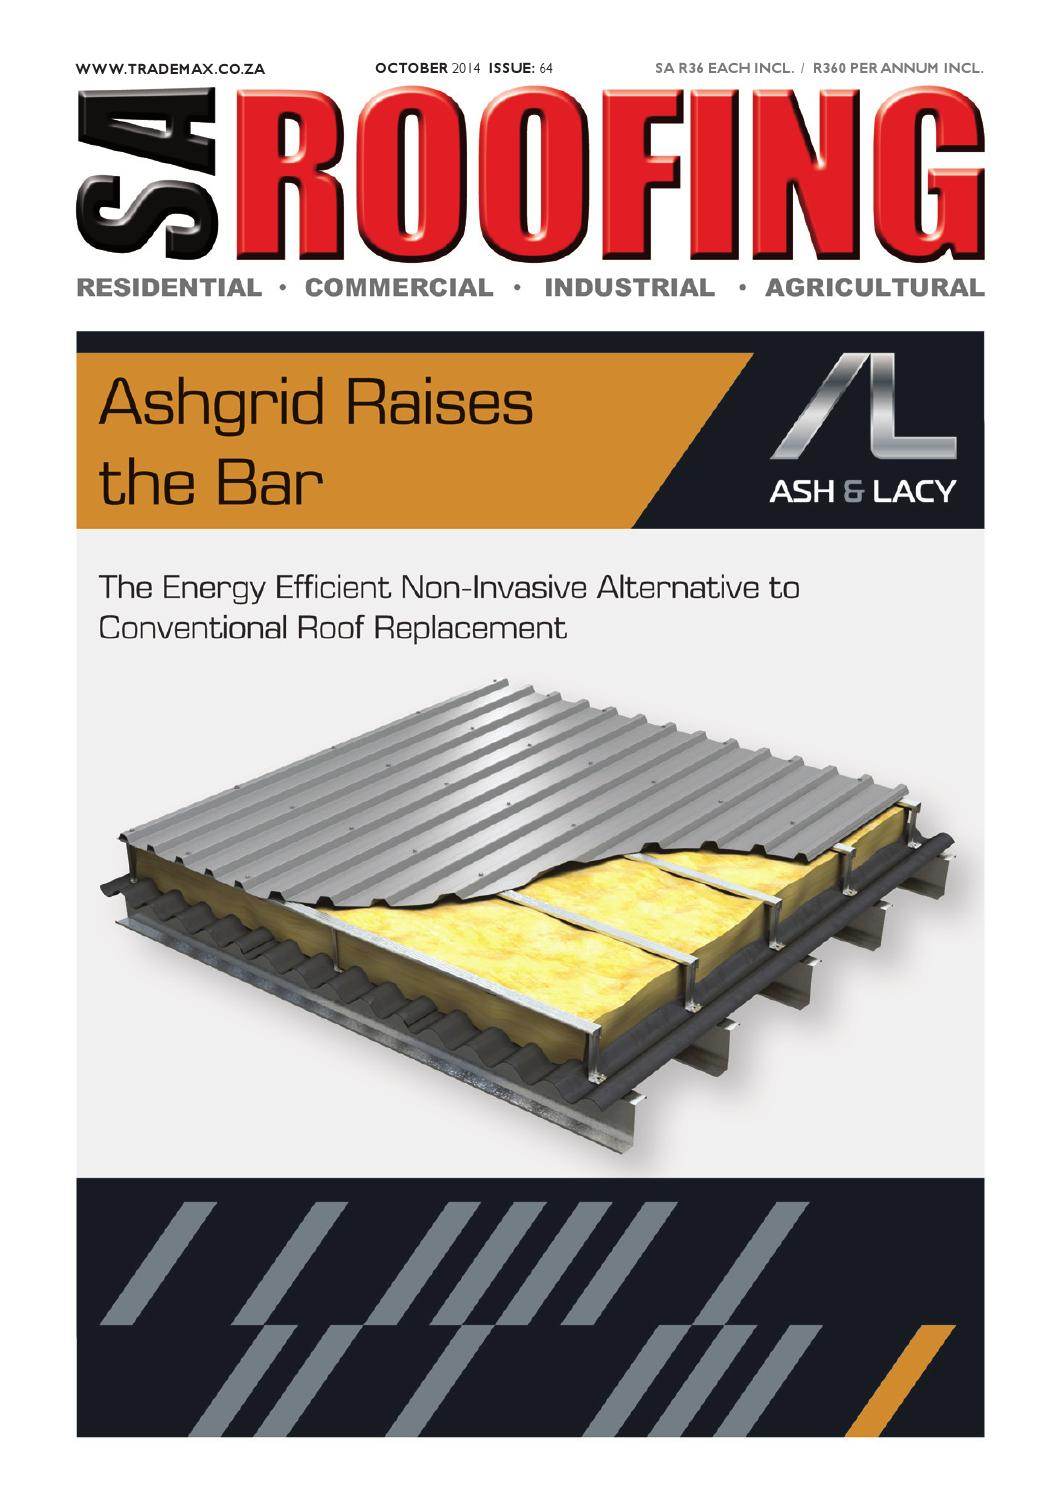 Morgan Thermal Ceramics Sa Roofing October 2014 Issue 64 By Trademax Publications Issuu